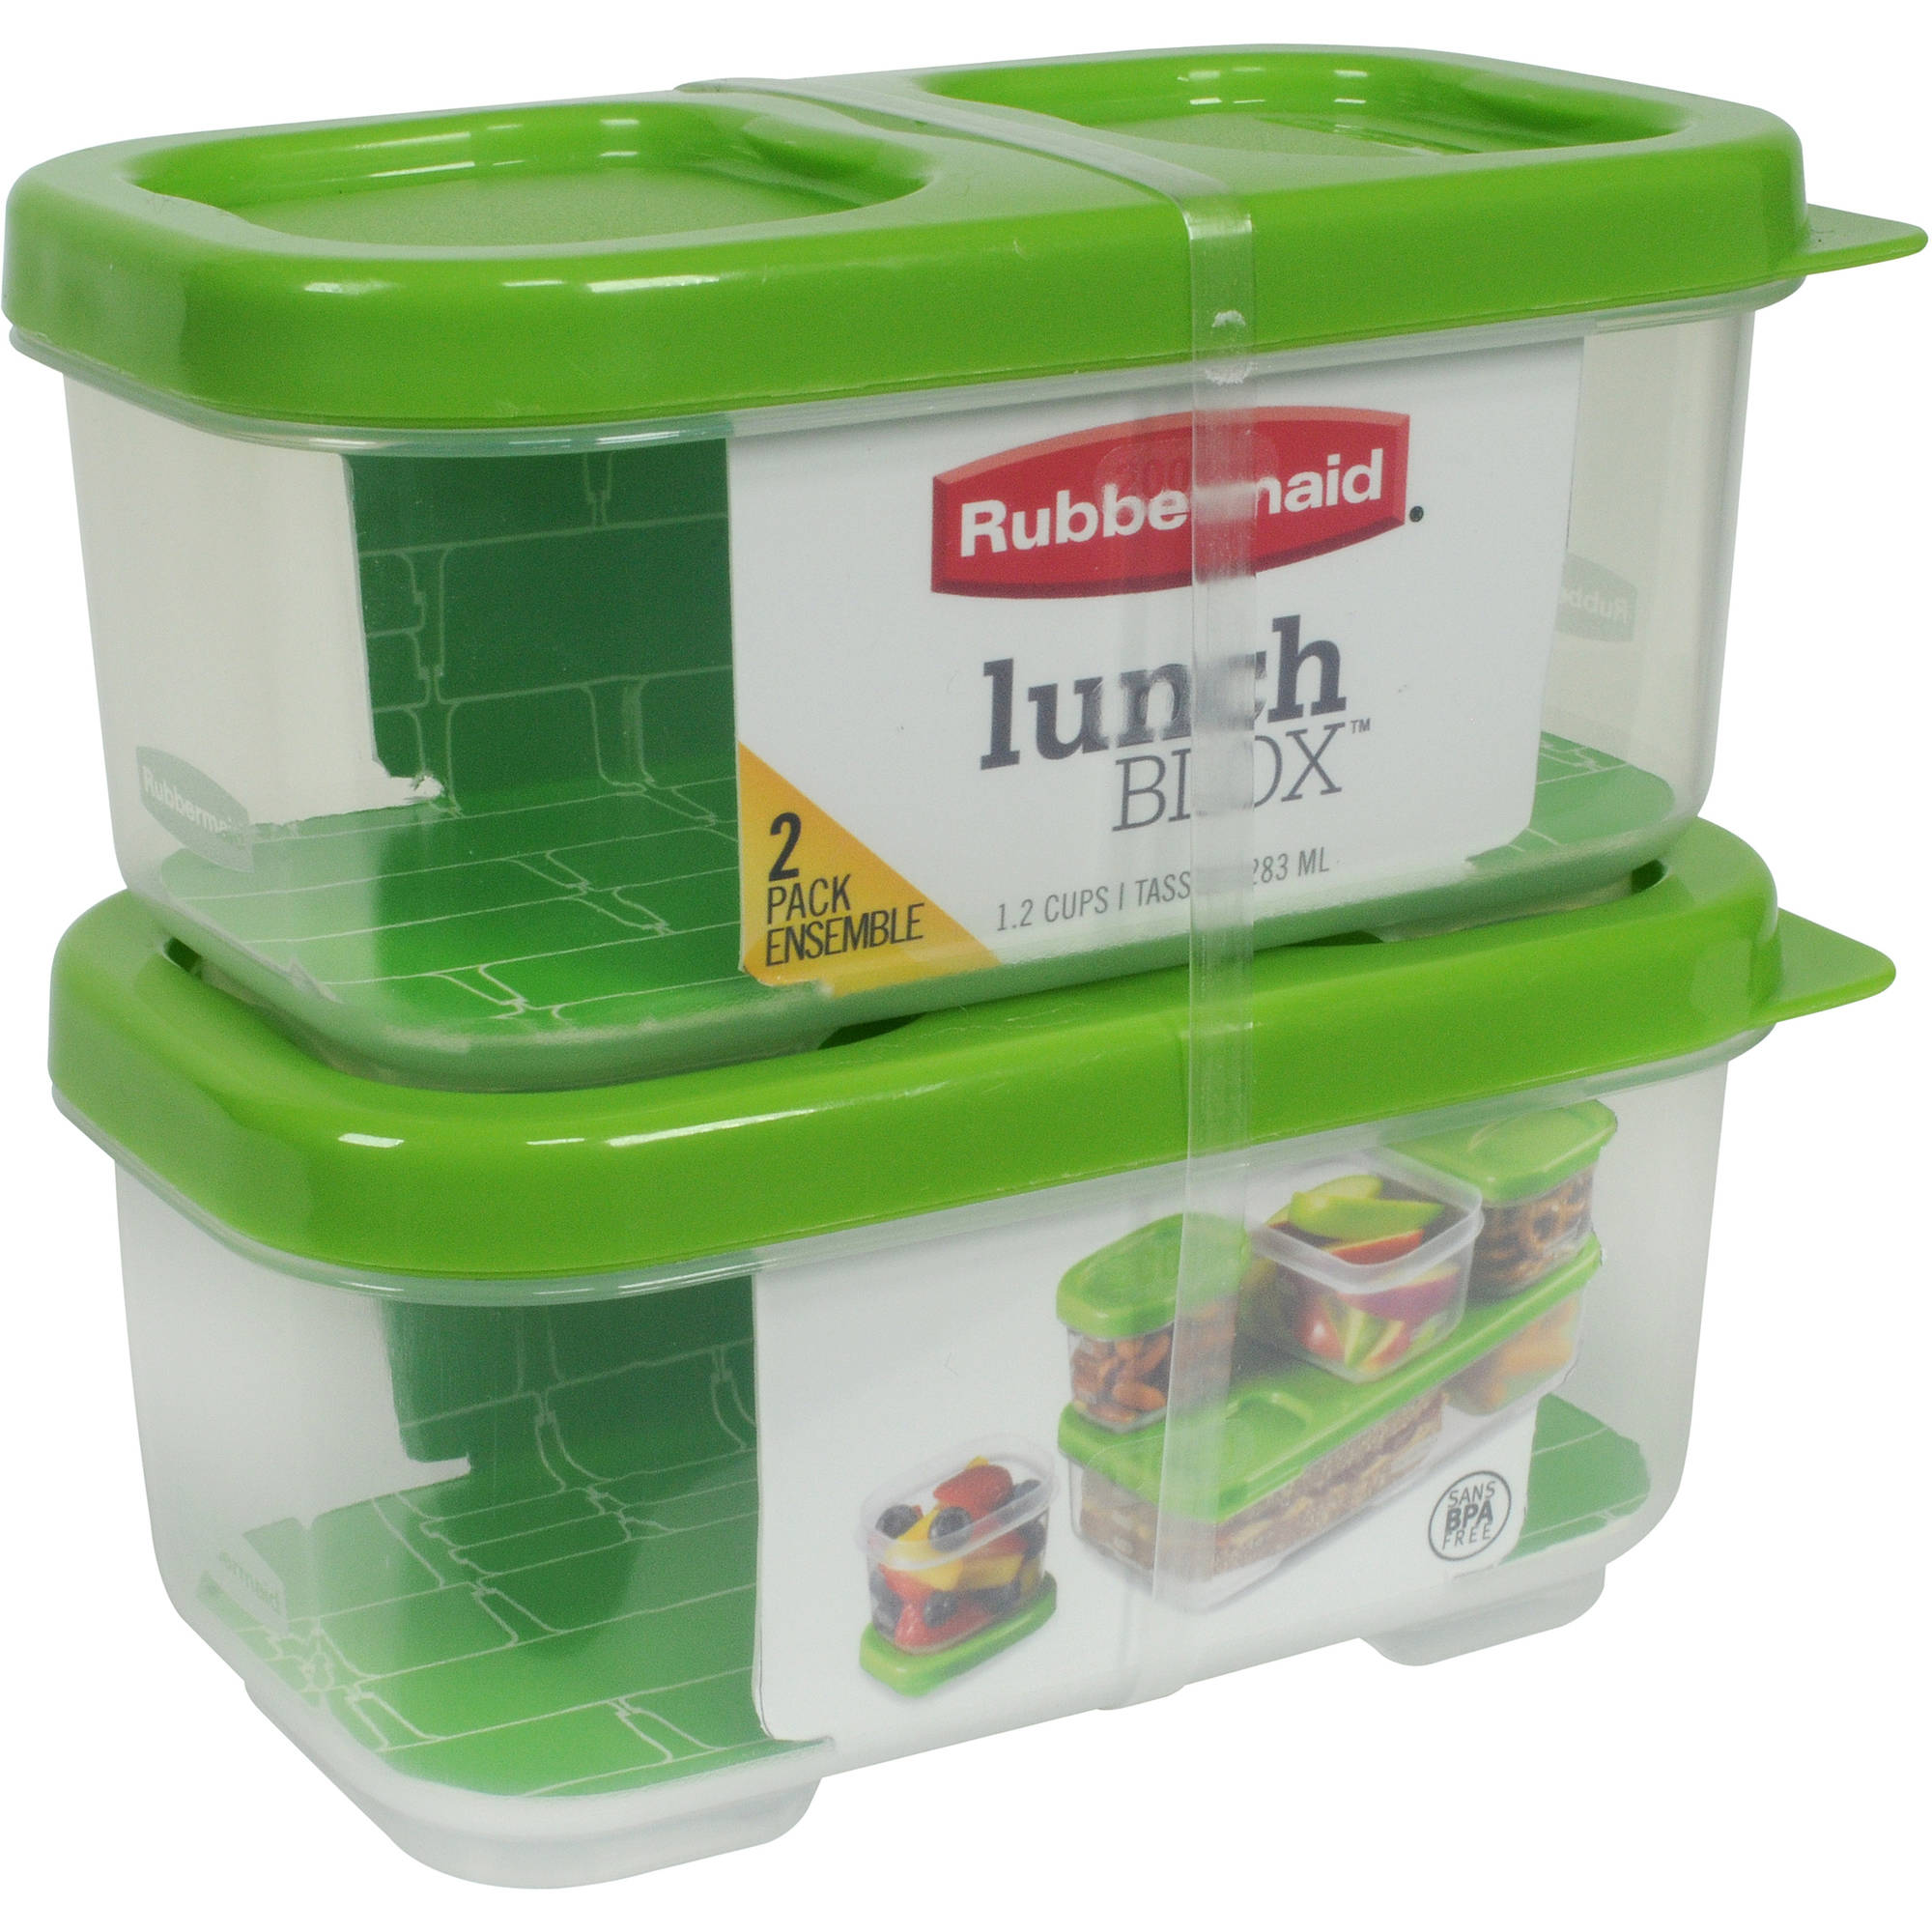 Rubbermaid LunchBlox Side Dish Food Storage Containers